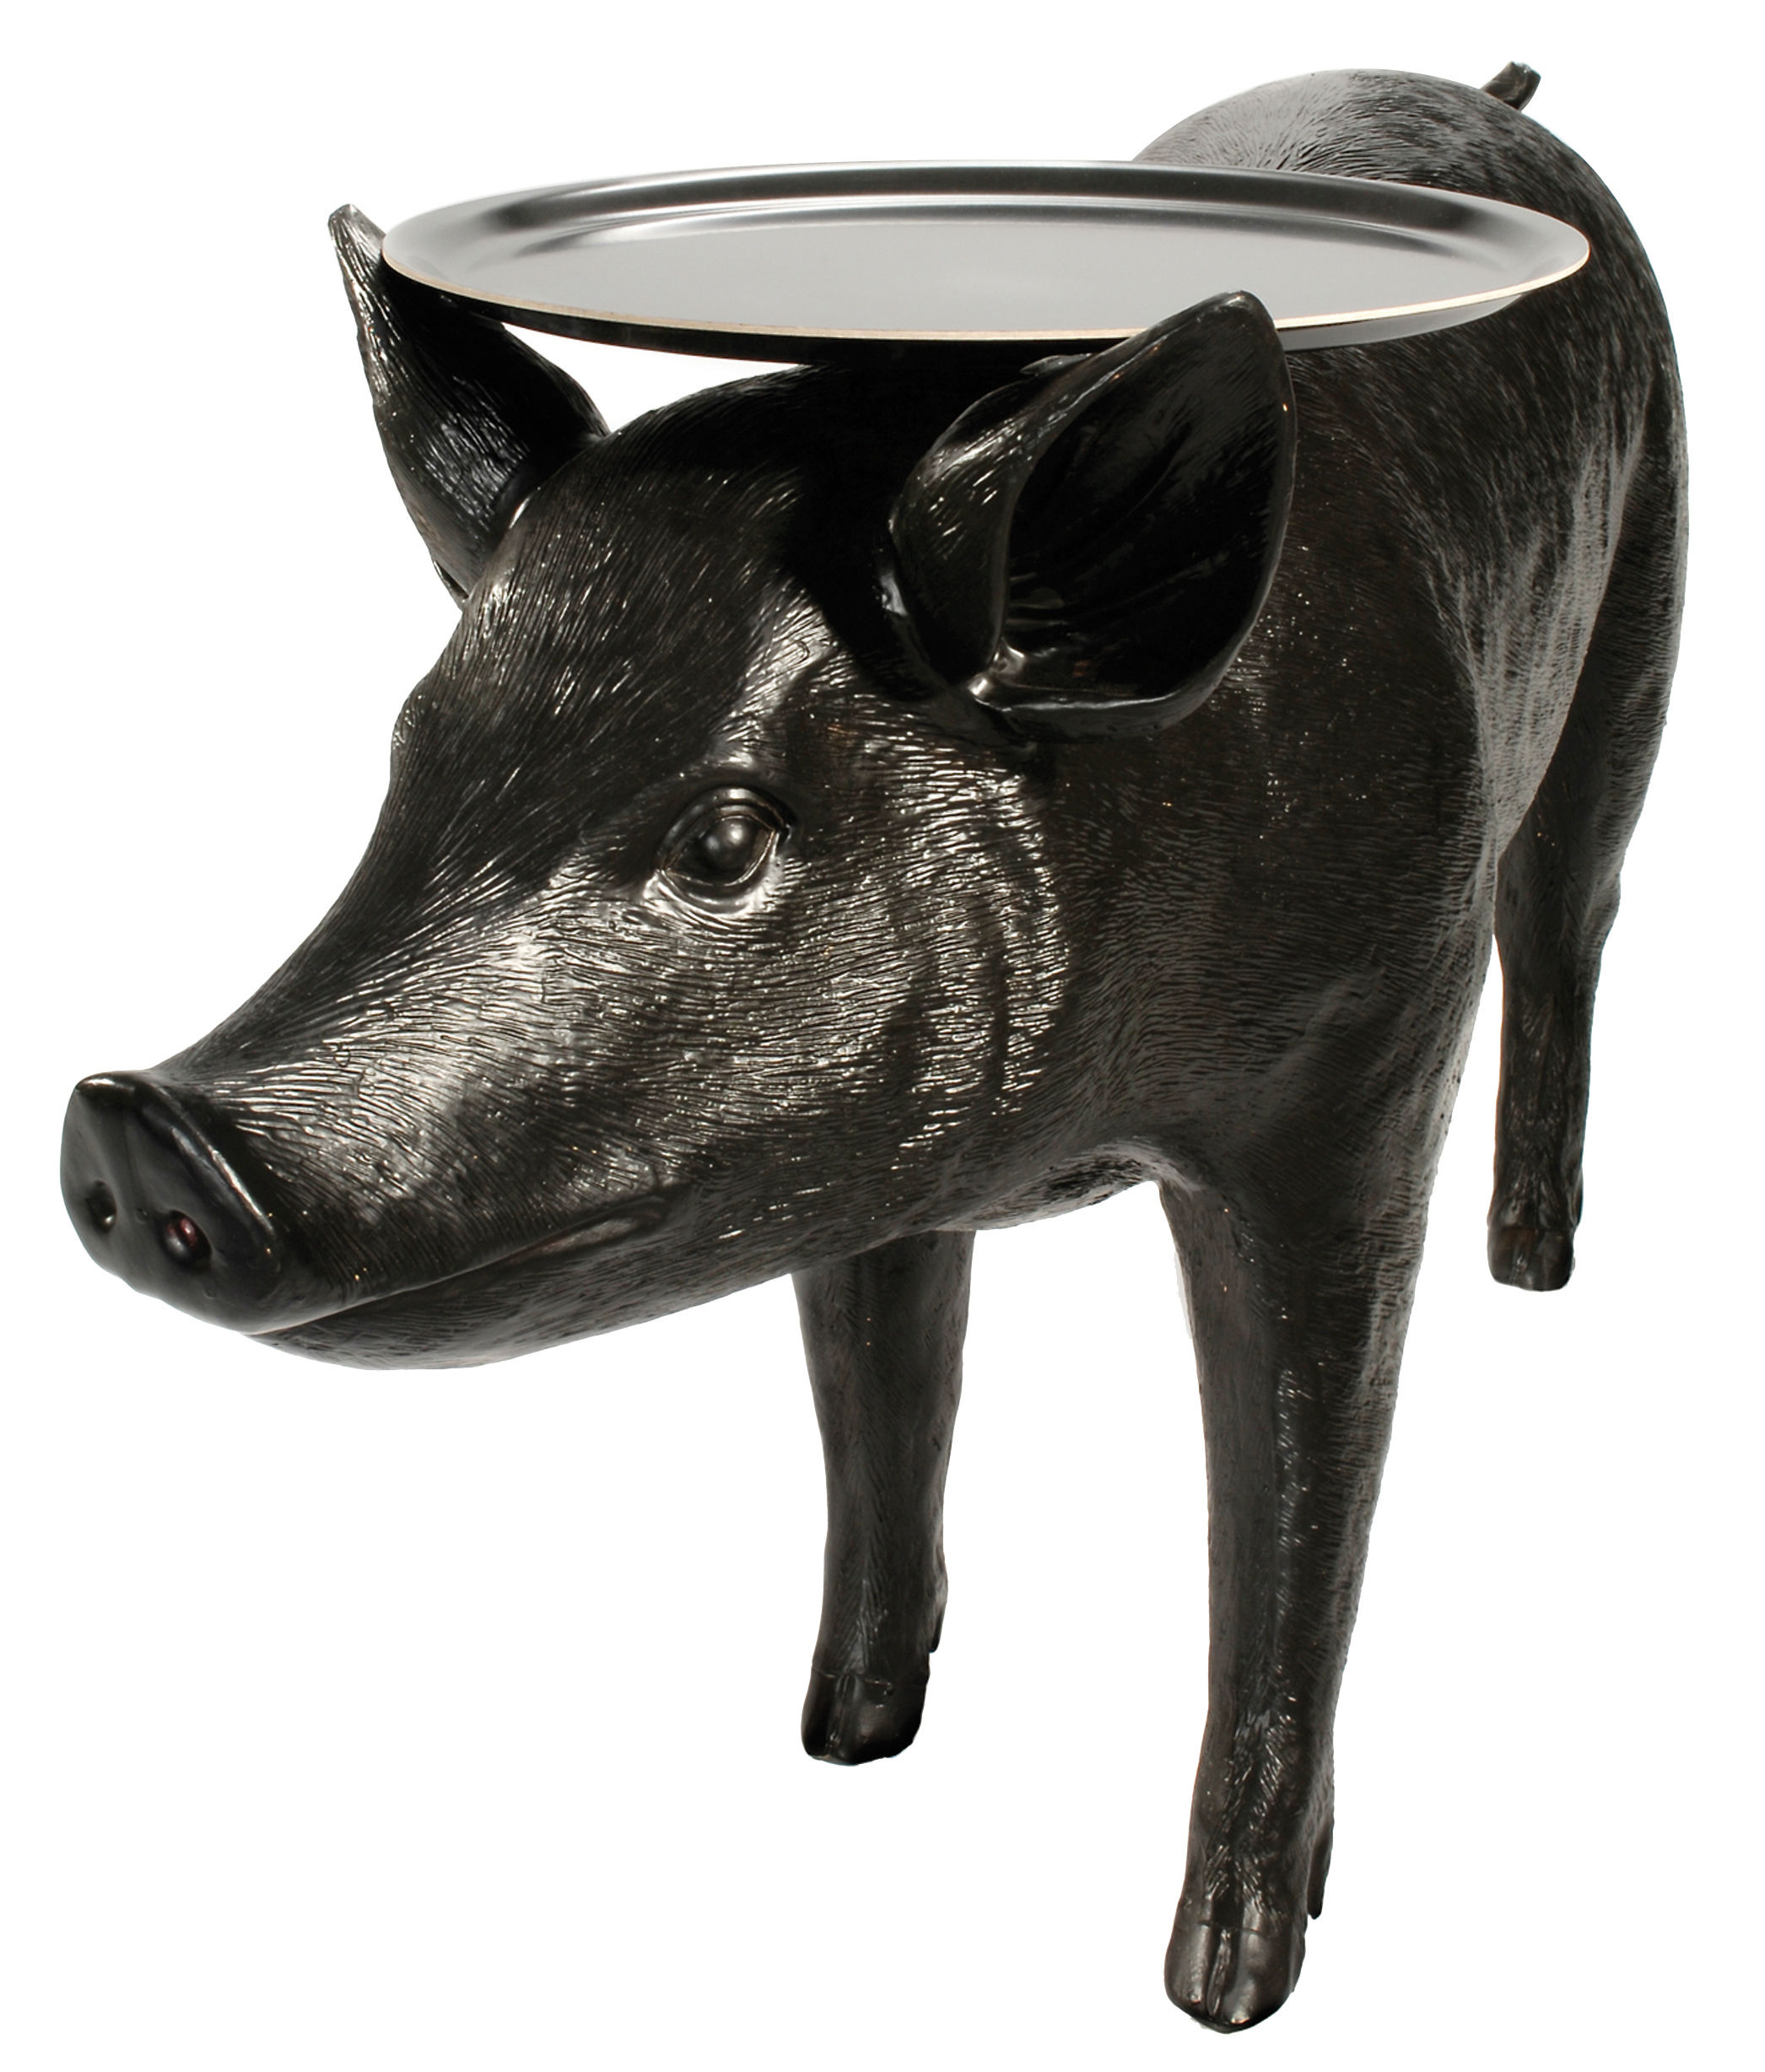 pig table coffee table black by moooi. Black Bedroom Furniture Sets. Home Design Ideas